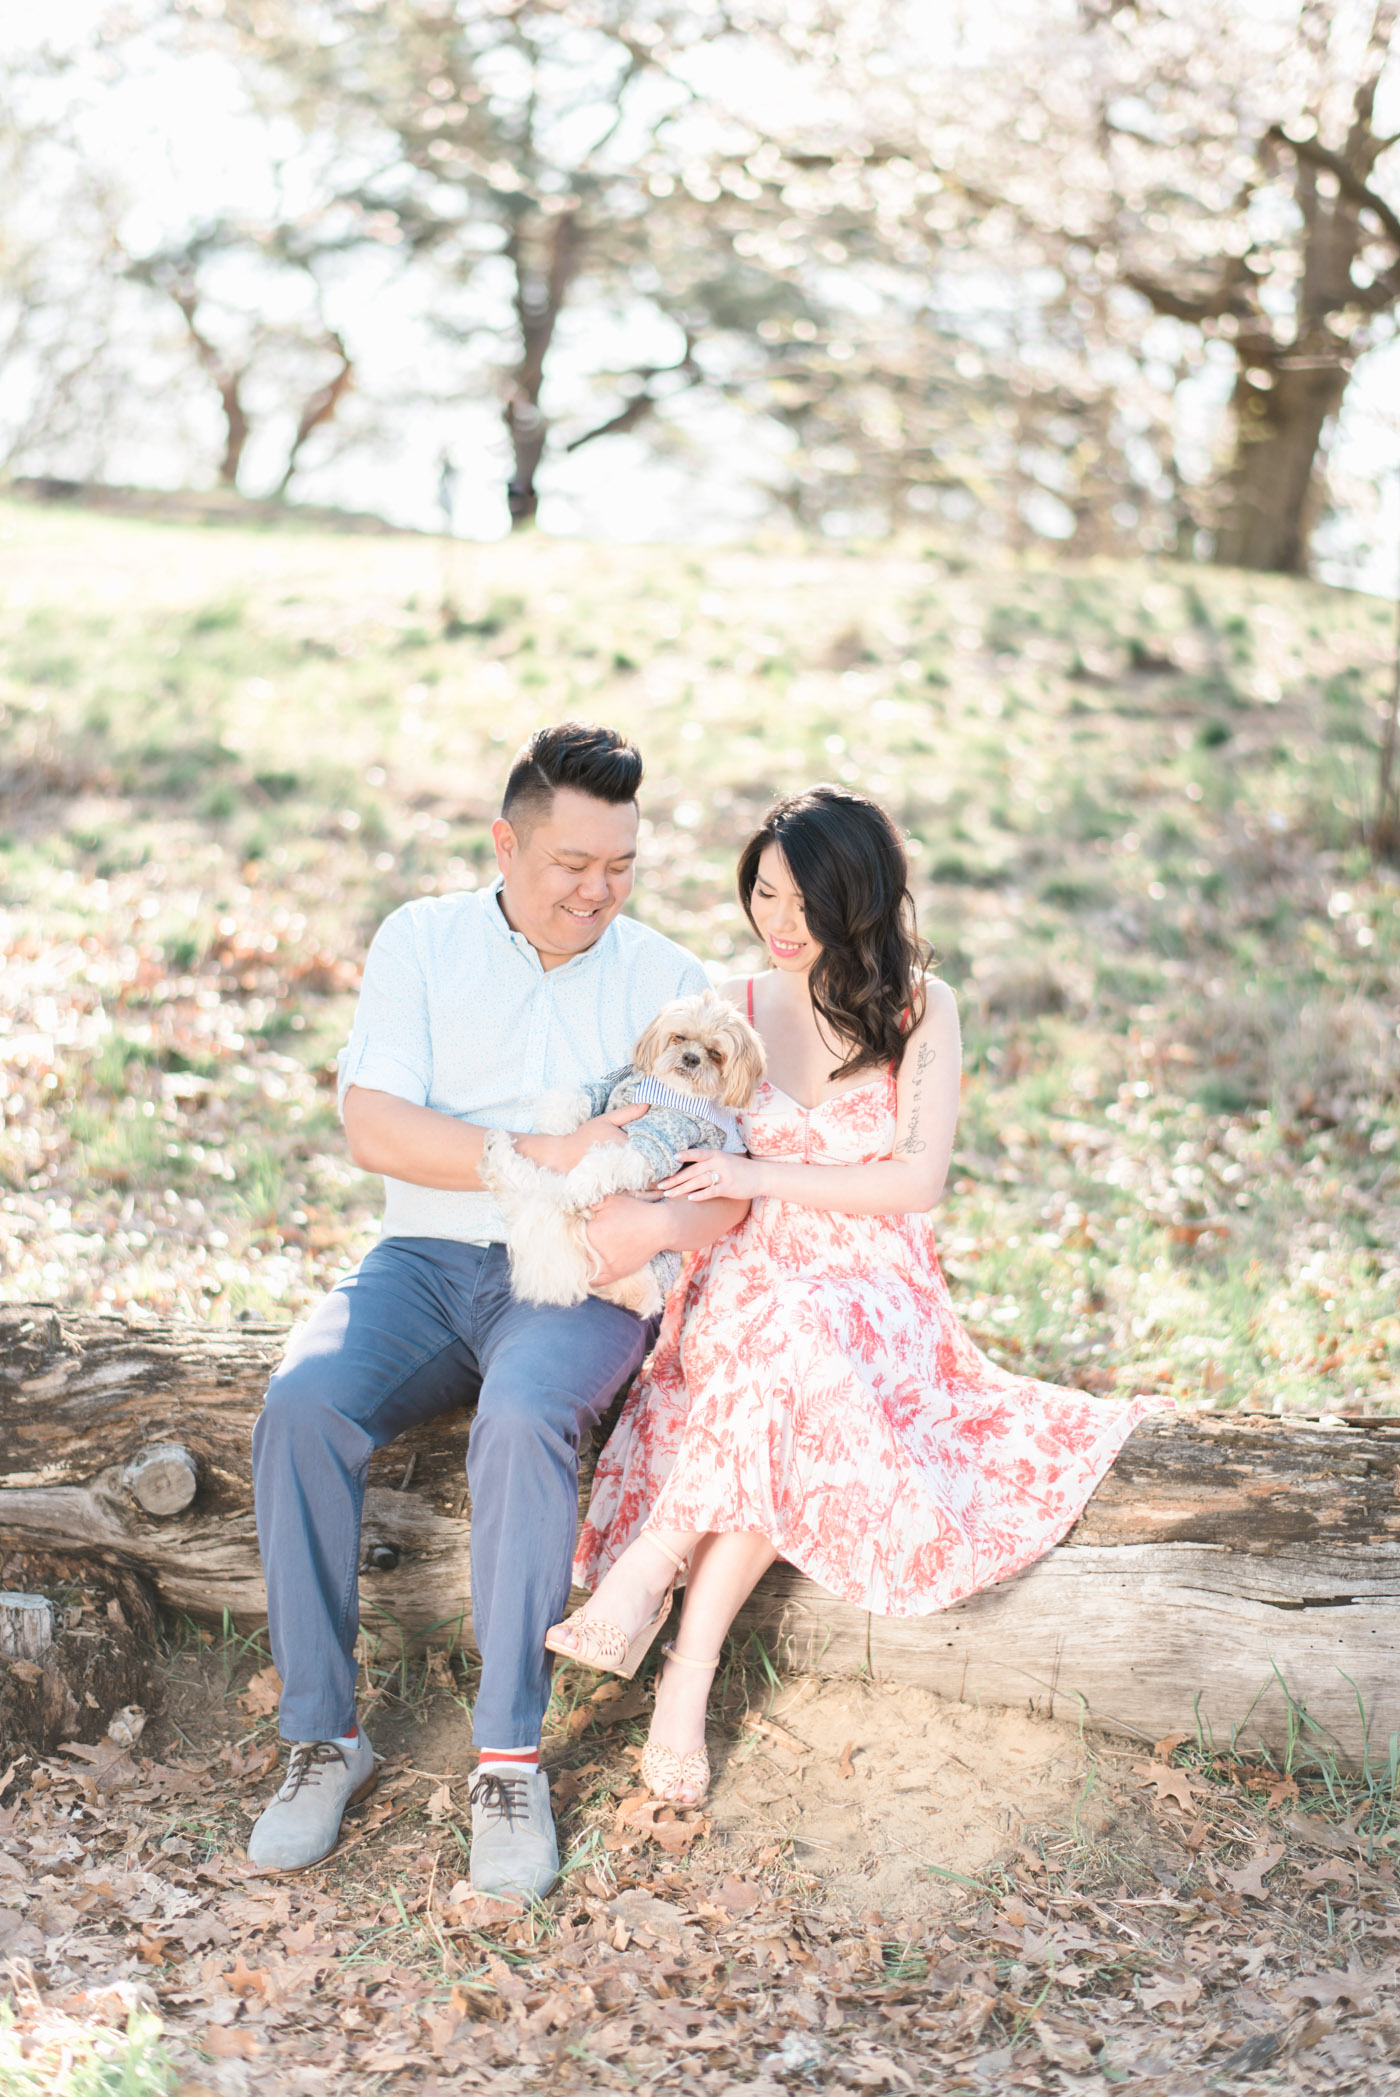 Engagement shoot with their dog